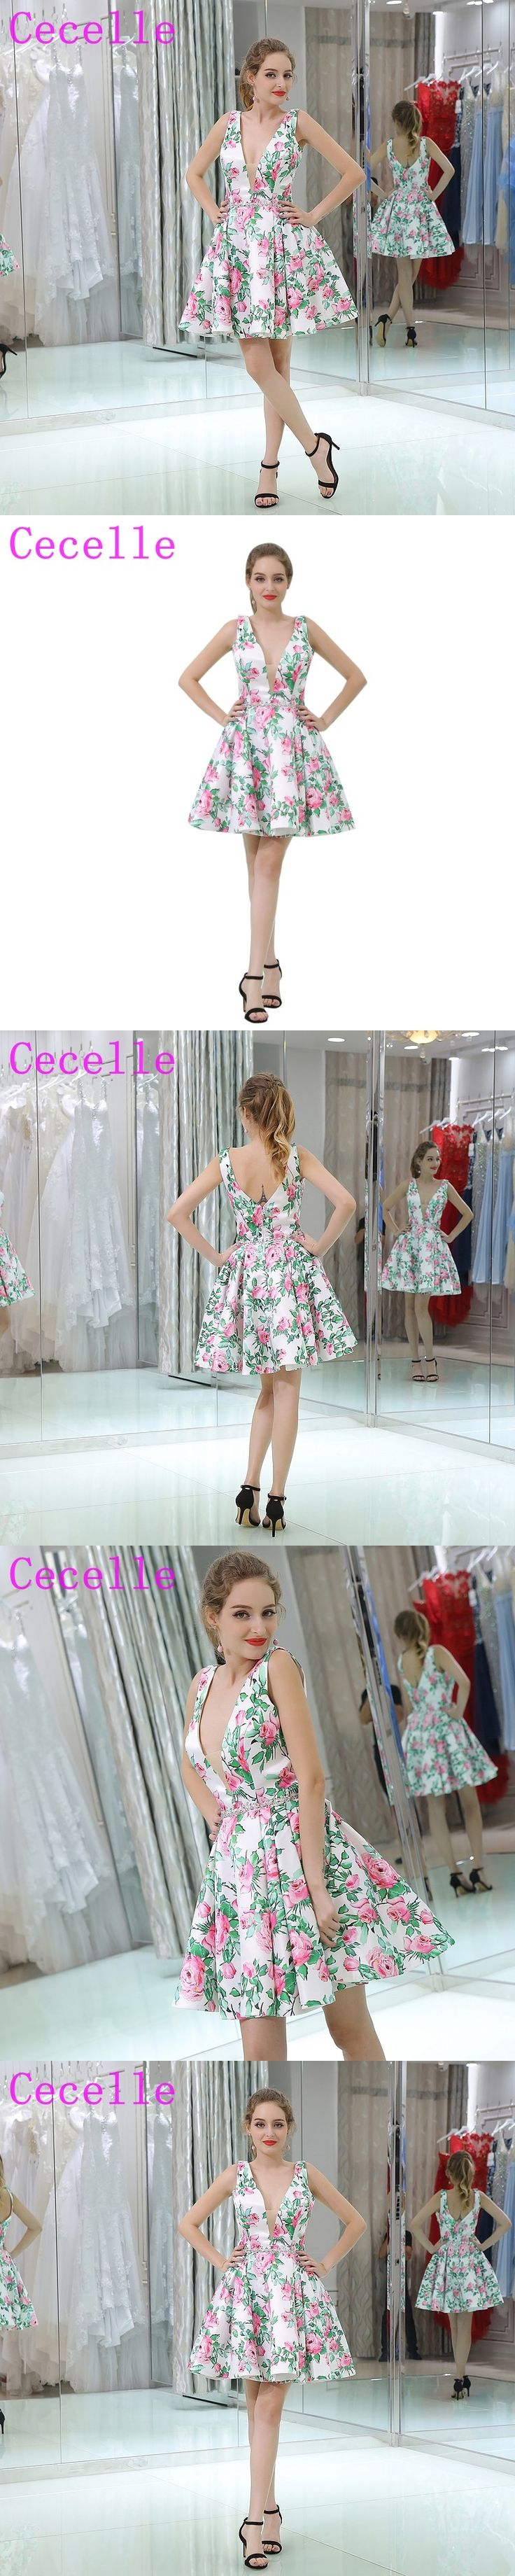 White and Green Floral Print Short Cocktail Dress Sleeveless A-line Knee Length V Neck Semi Formal Juniors Cocktail Party Dress